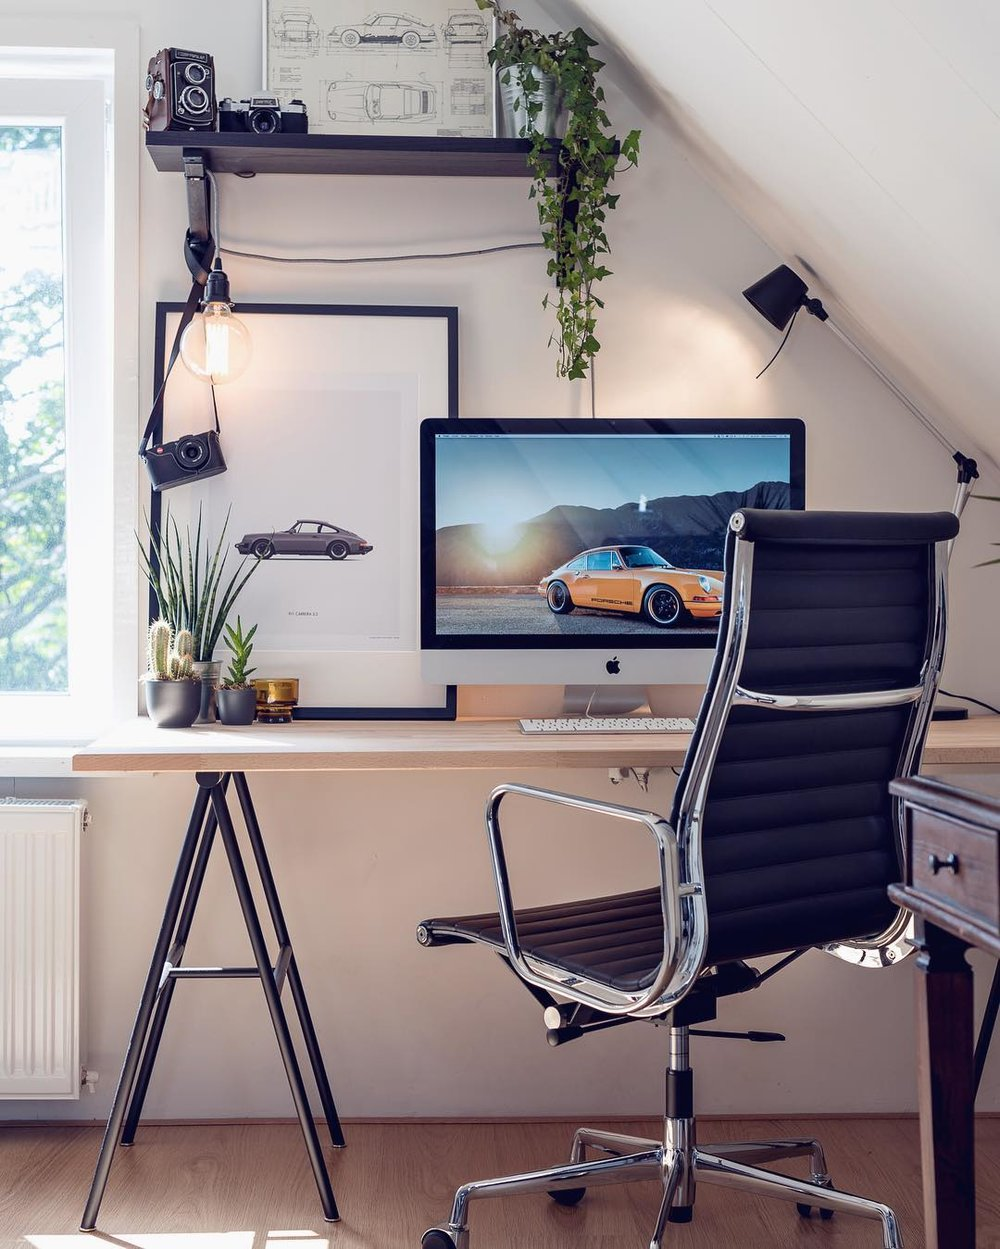 niels-onderwater-on-instagram-pretty-much-the-perfect-home-office-interiordesign-desksetup-scandicde-1468492472kg84n.jpg